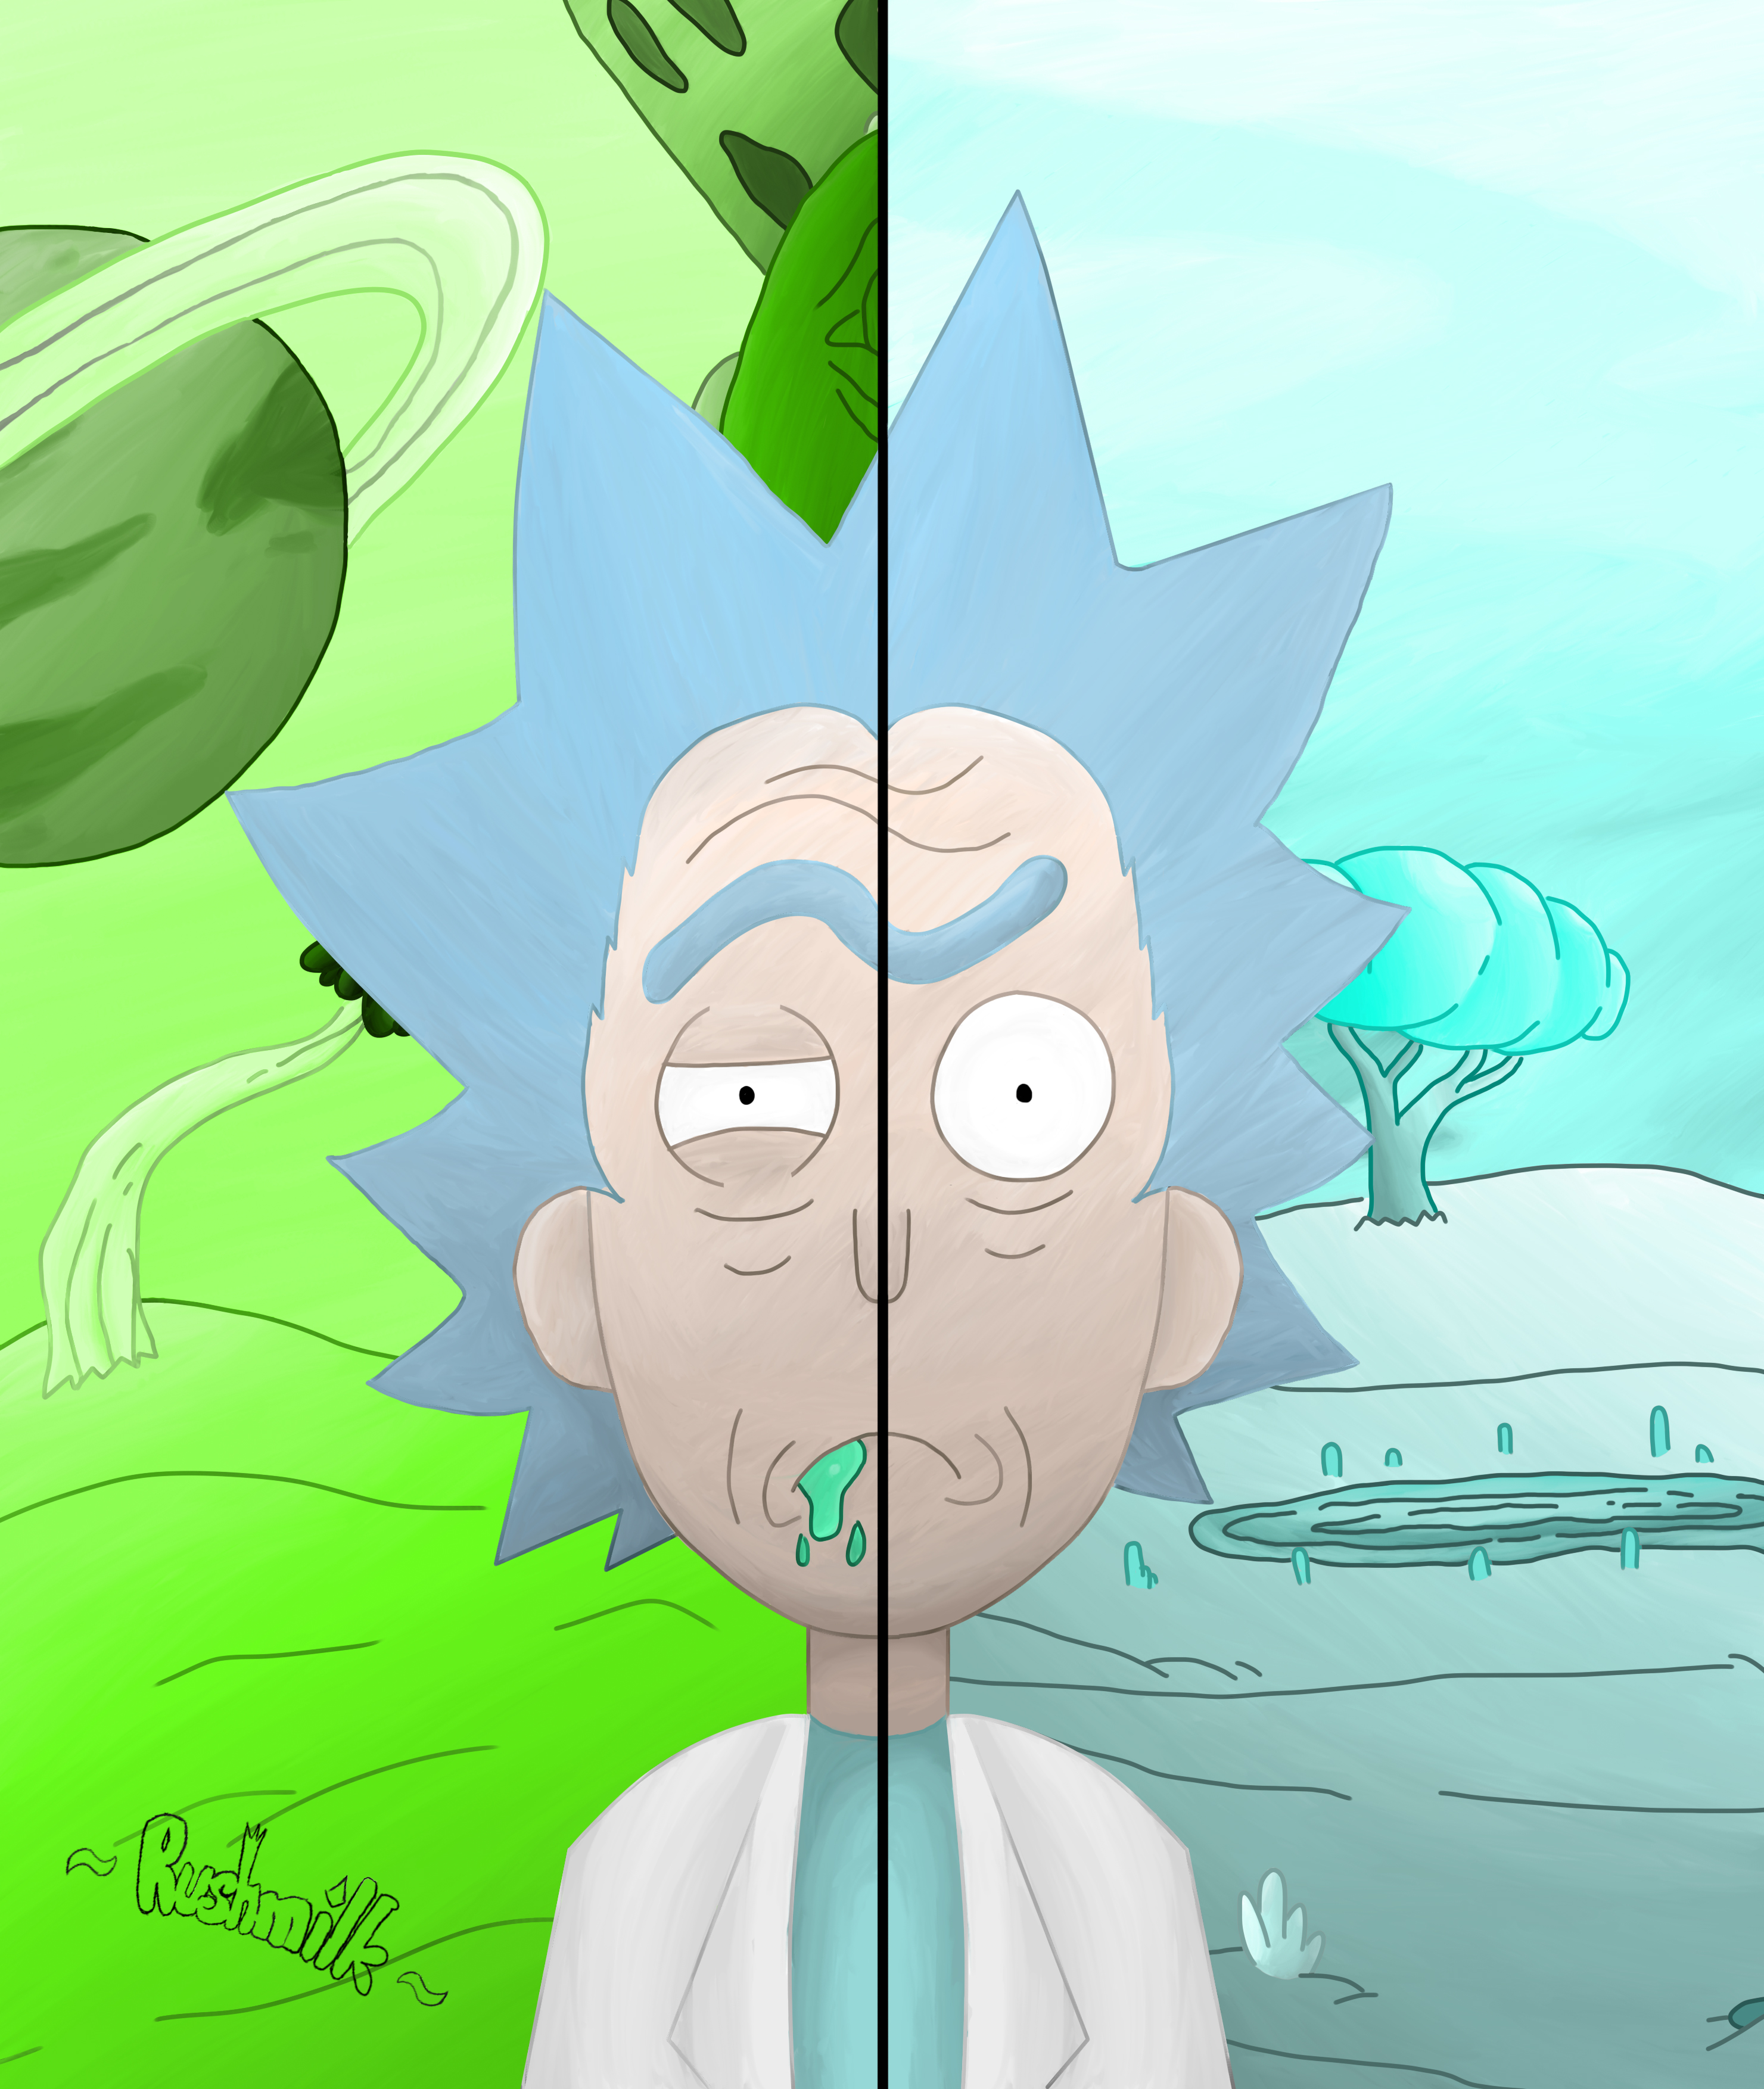 The Two Sides of Rick